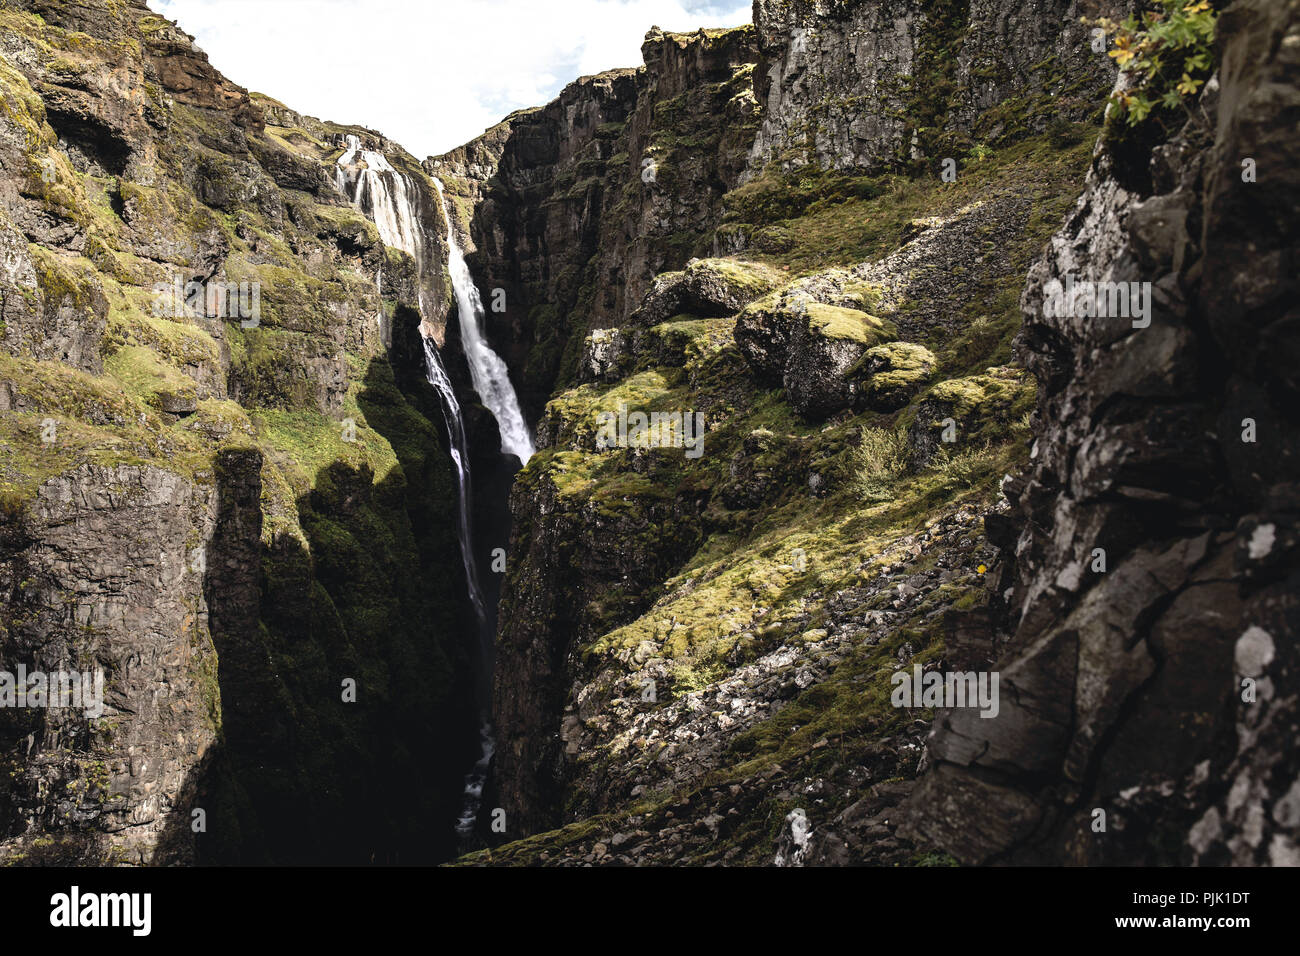 The mighty waterfall Glymur in Iceland Stock Photo